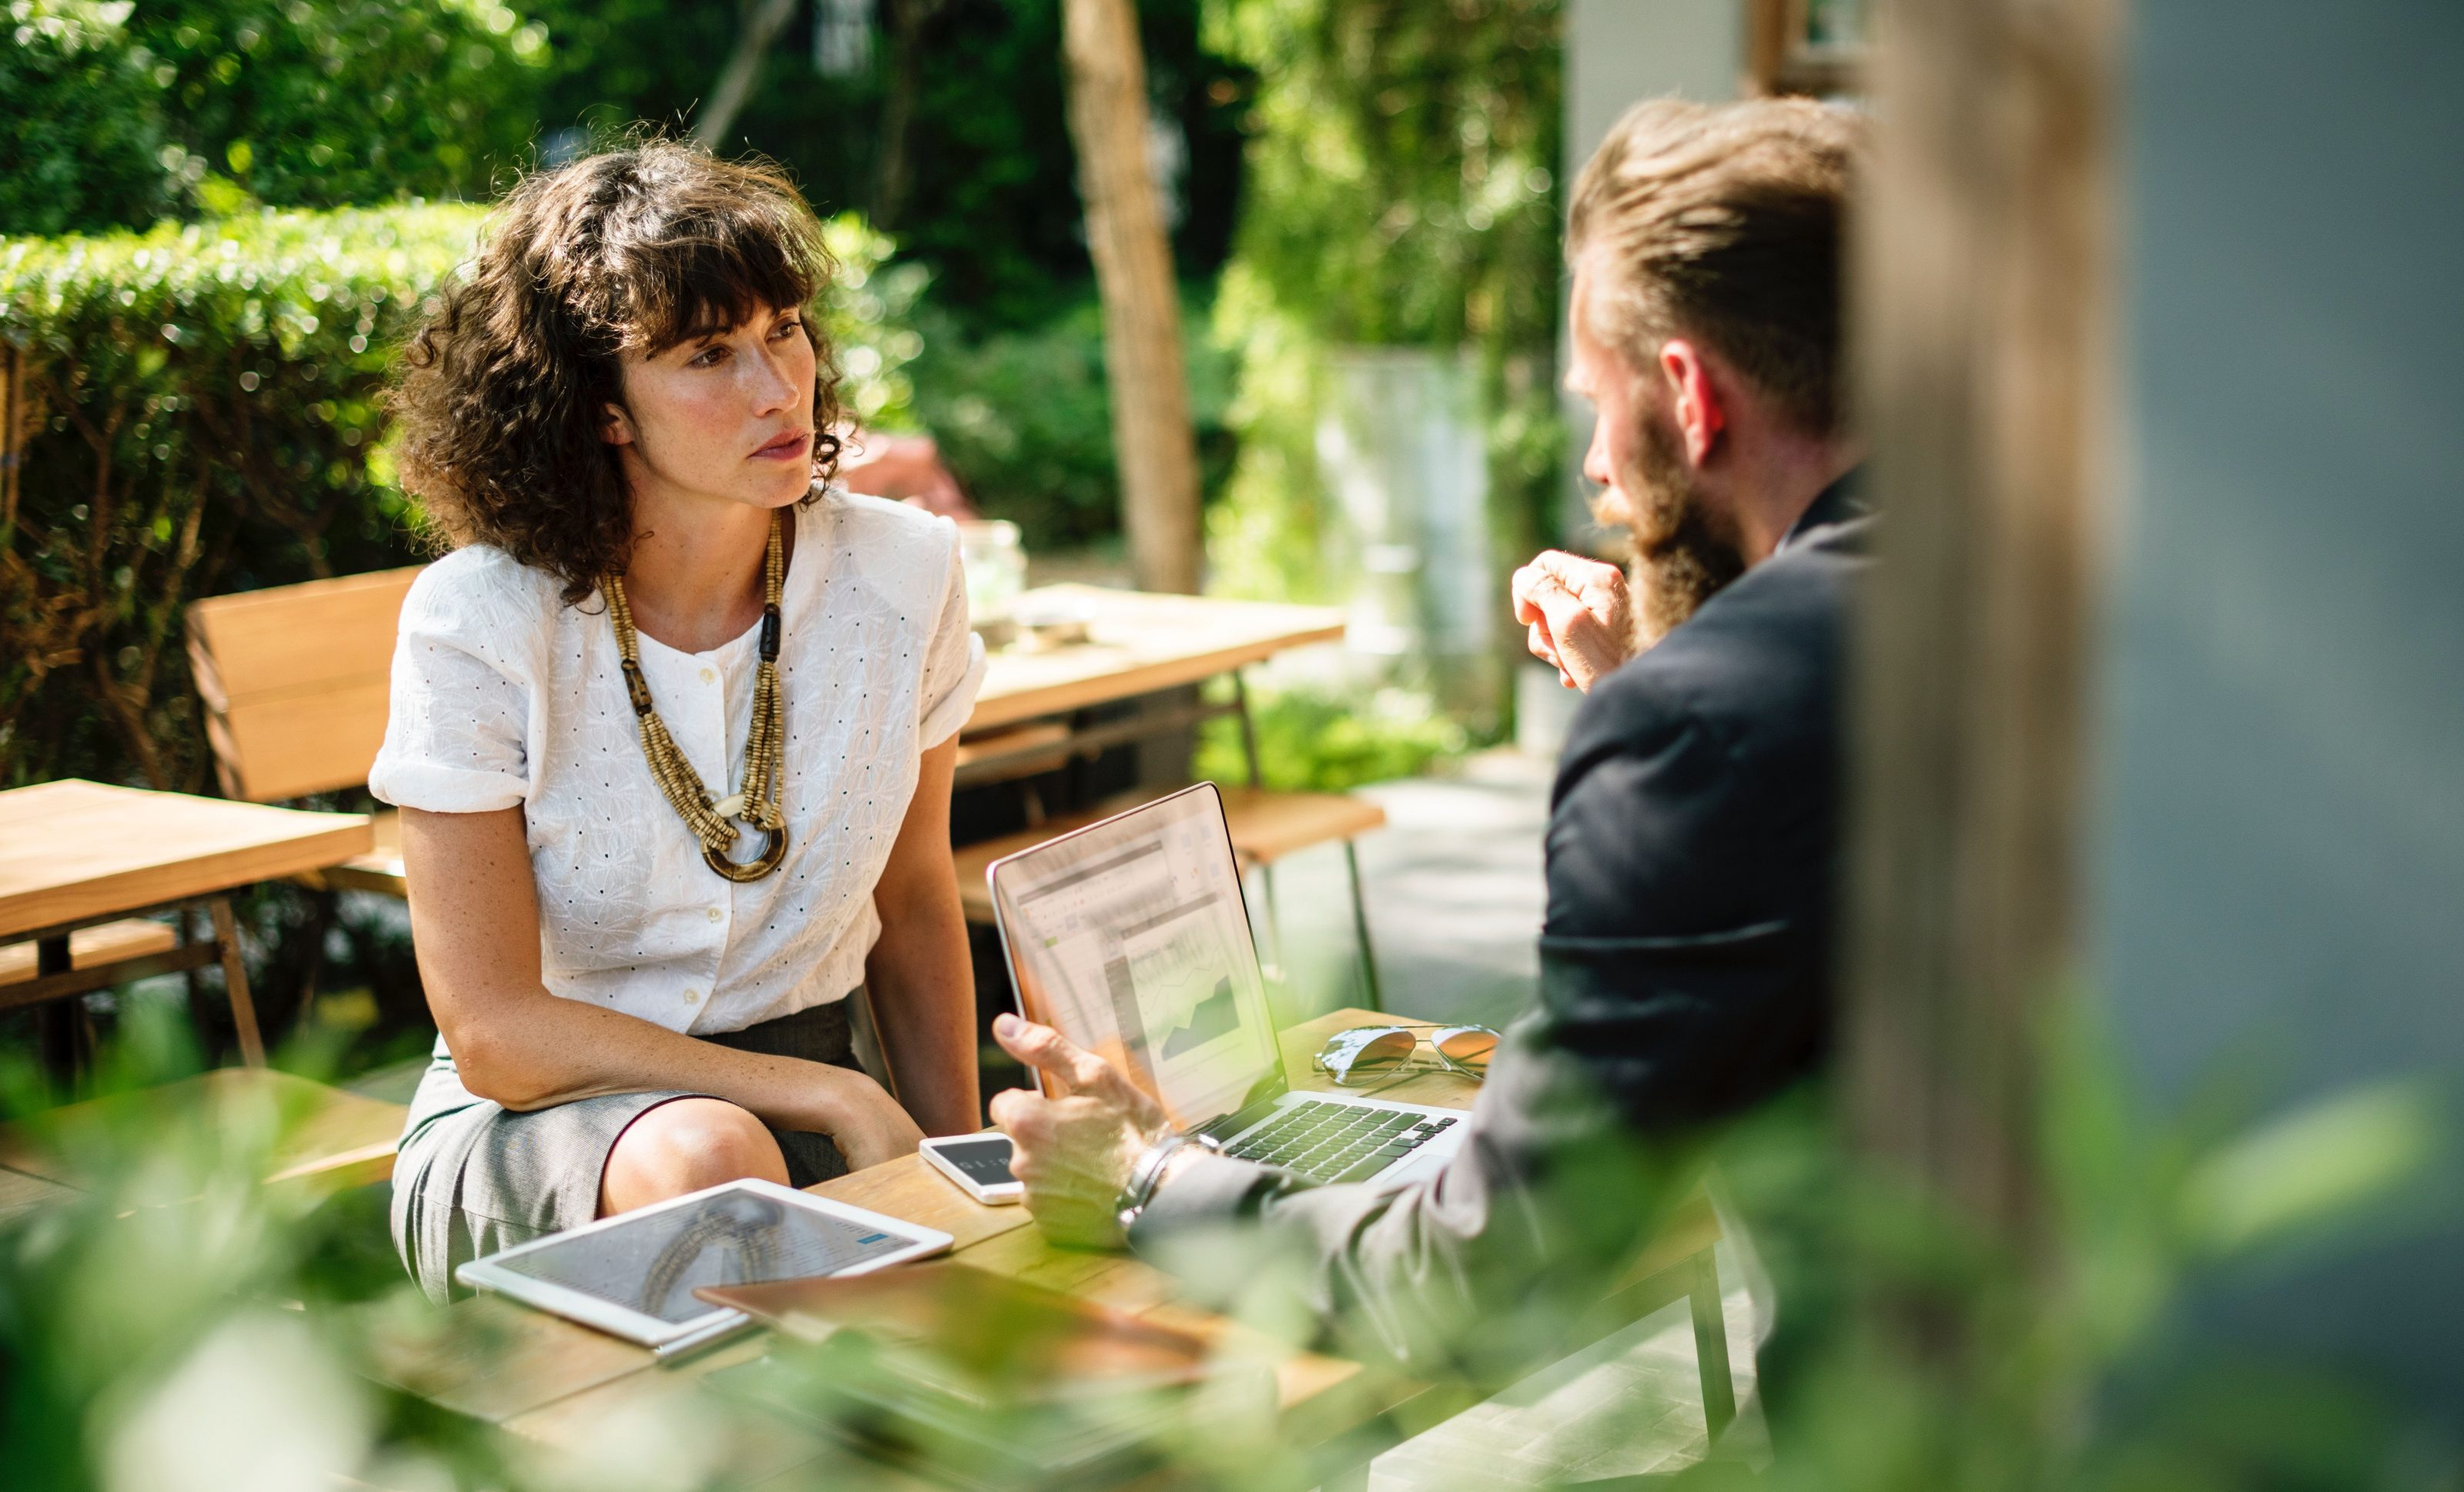 How to be more likable on dates and job interviews